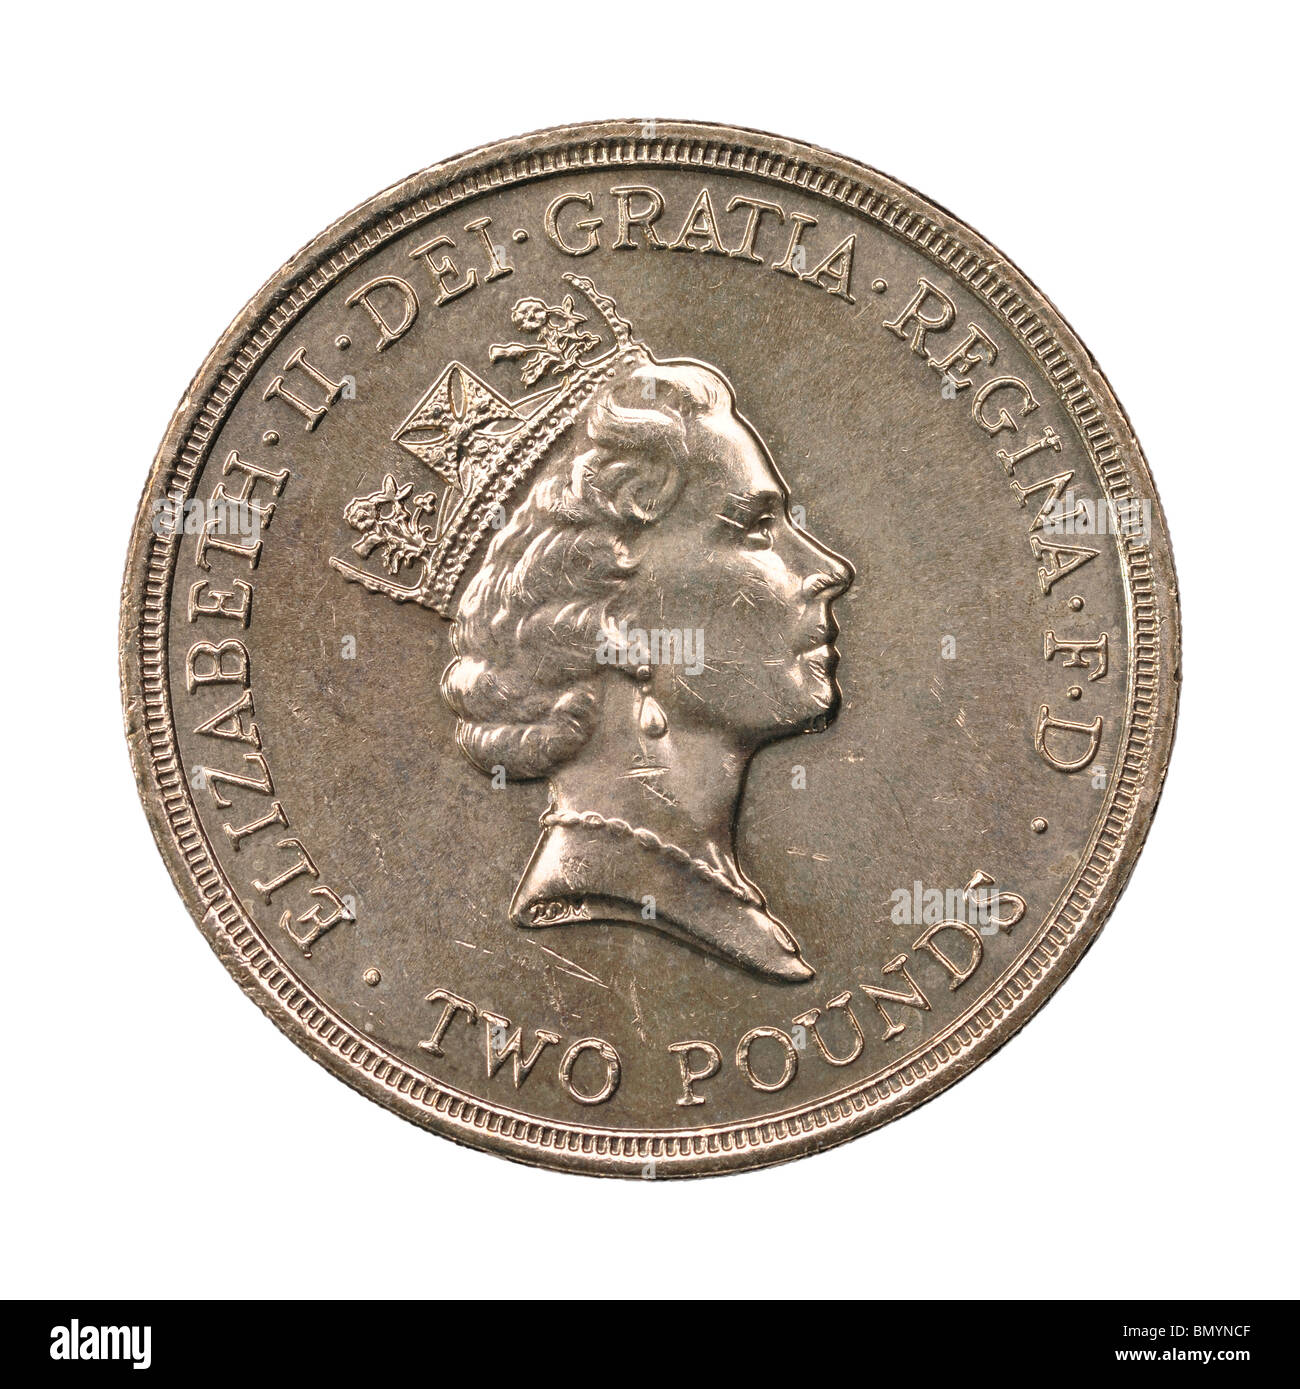 1989 UK two pound coin - Stock Image